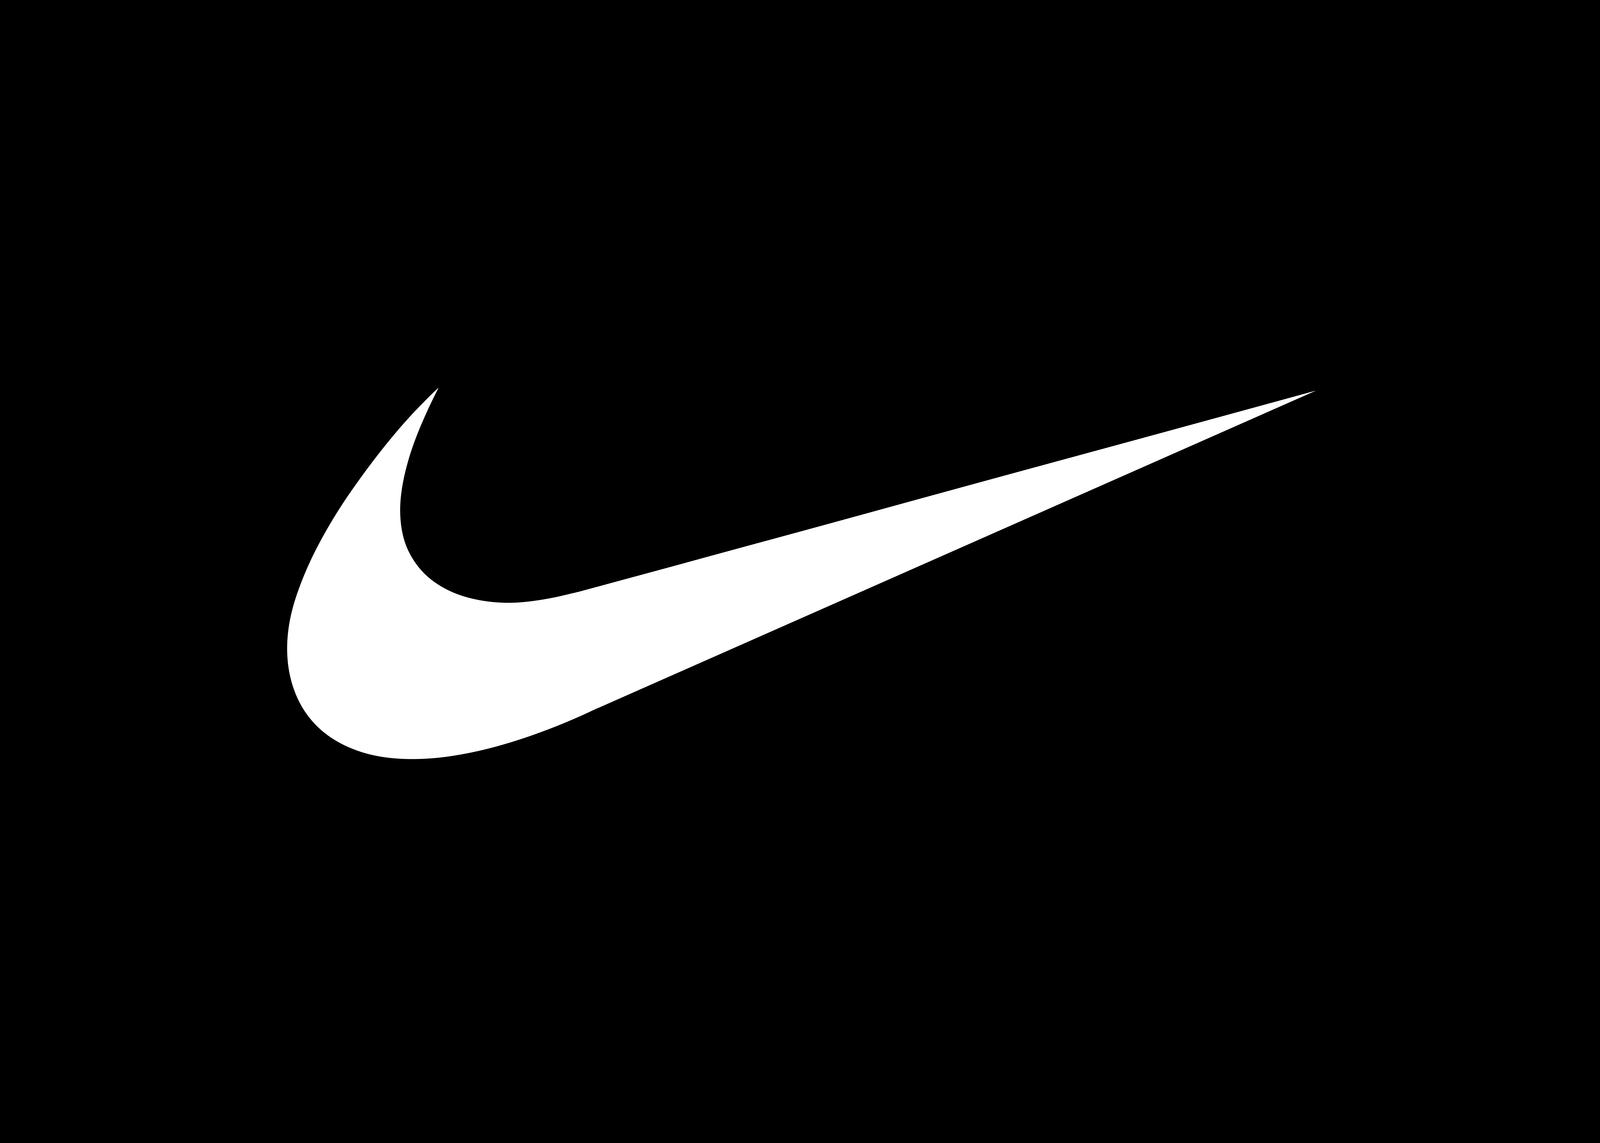 Nike Inc. Organizational Structure Characteristics (Analysis)